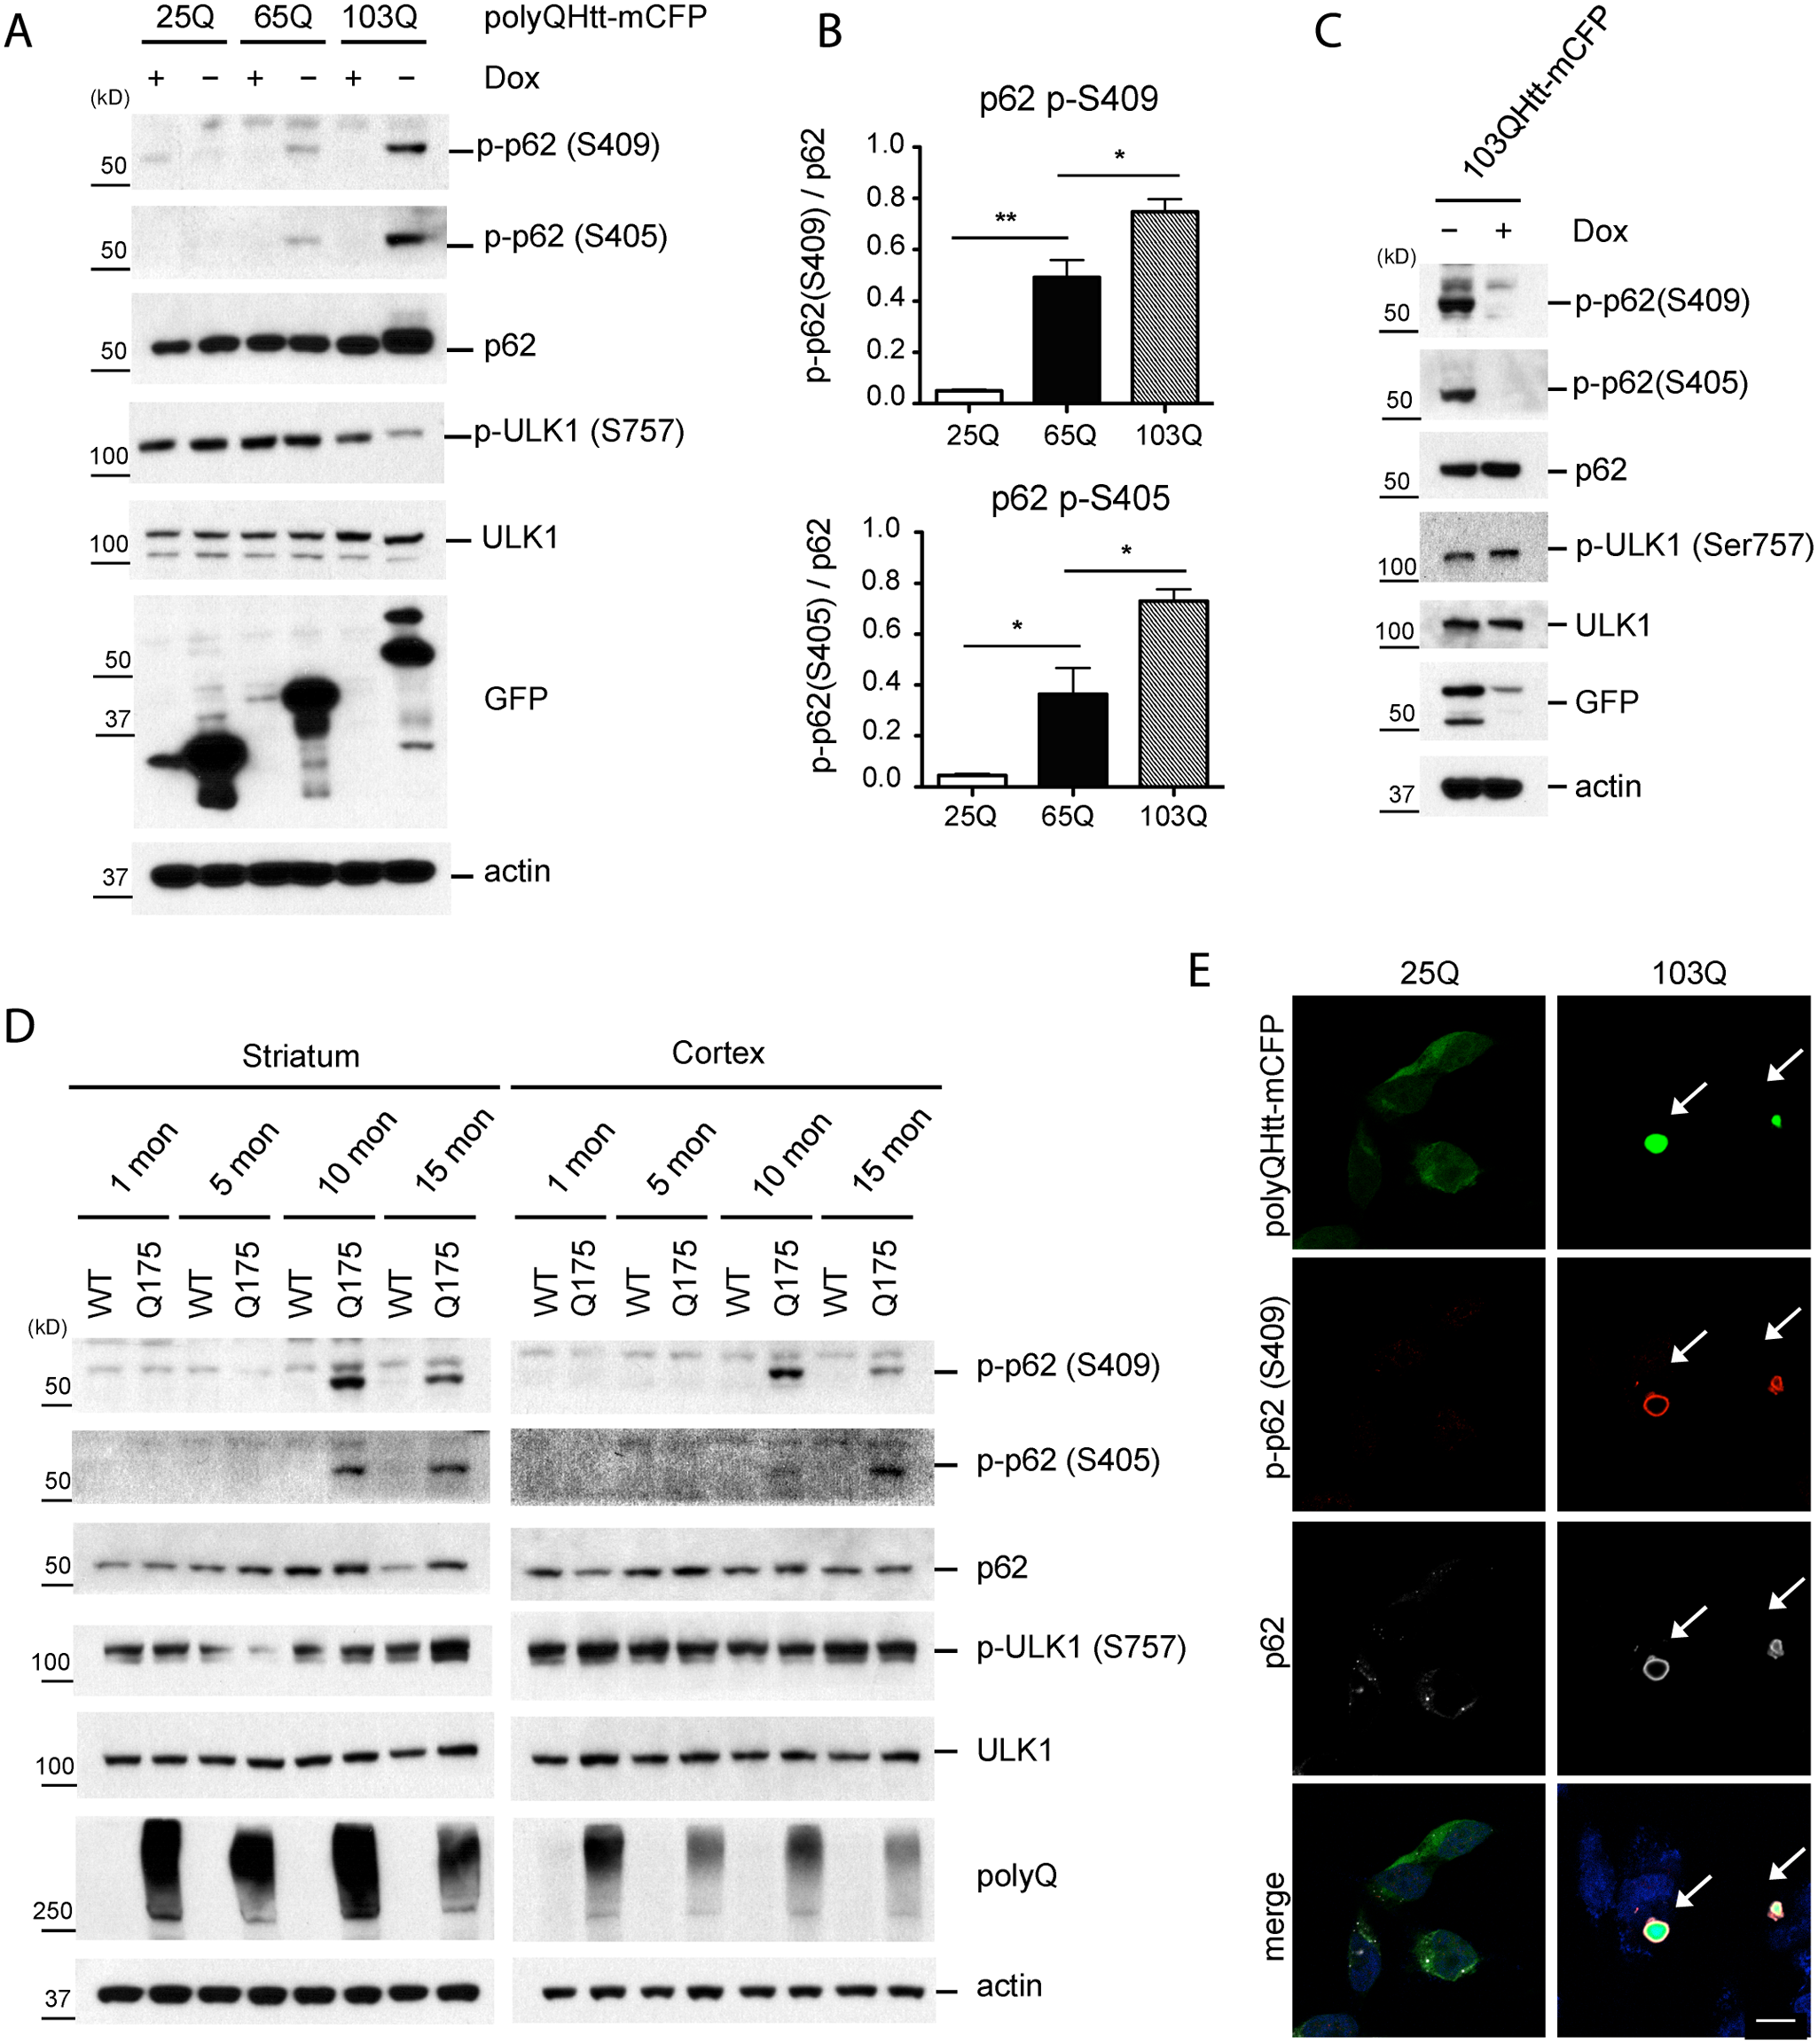 Phosphorylation of p62 at S409 is enhanced upon expression of polyQ-Htt proteins.